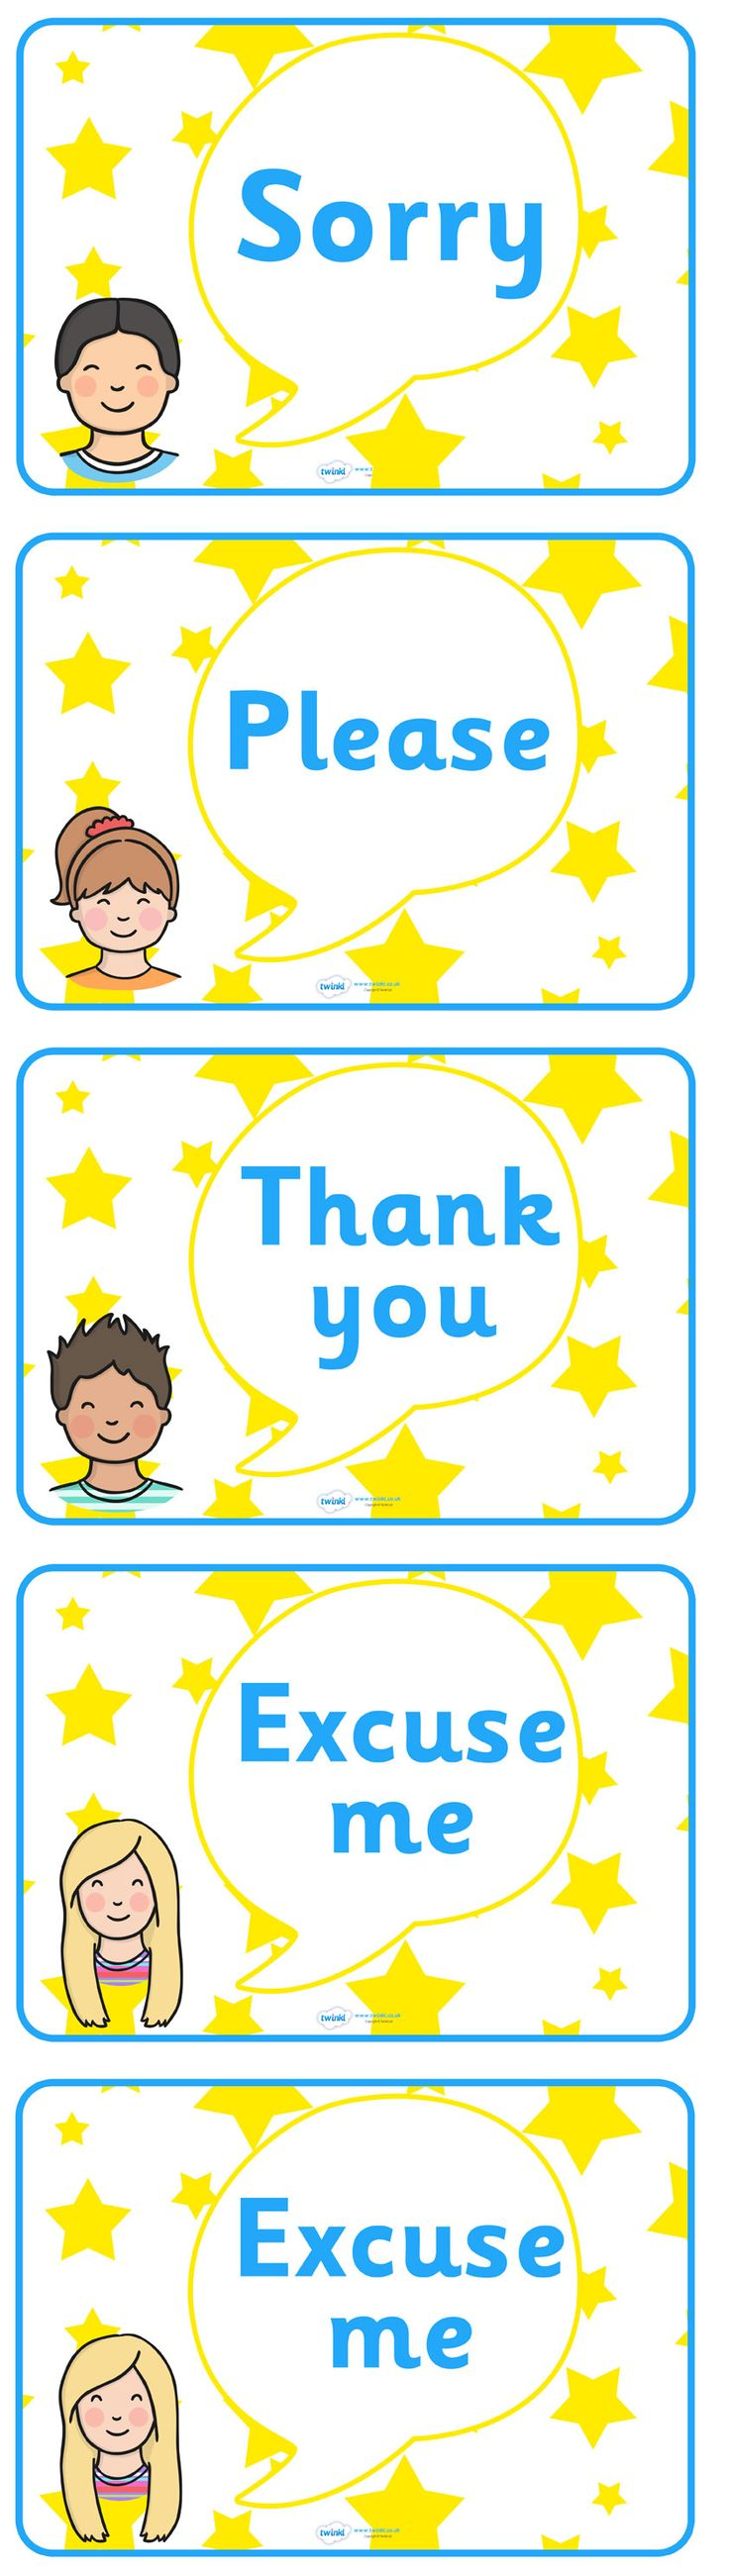 best good manners ideas manners for kids child  twinkl resources >> good manners vocabulary display posters >> thousands of printable primary teaching